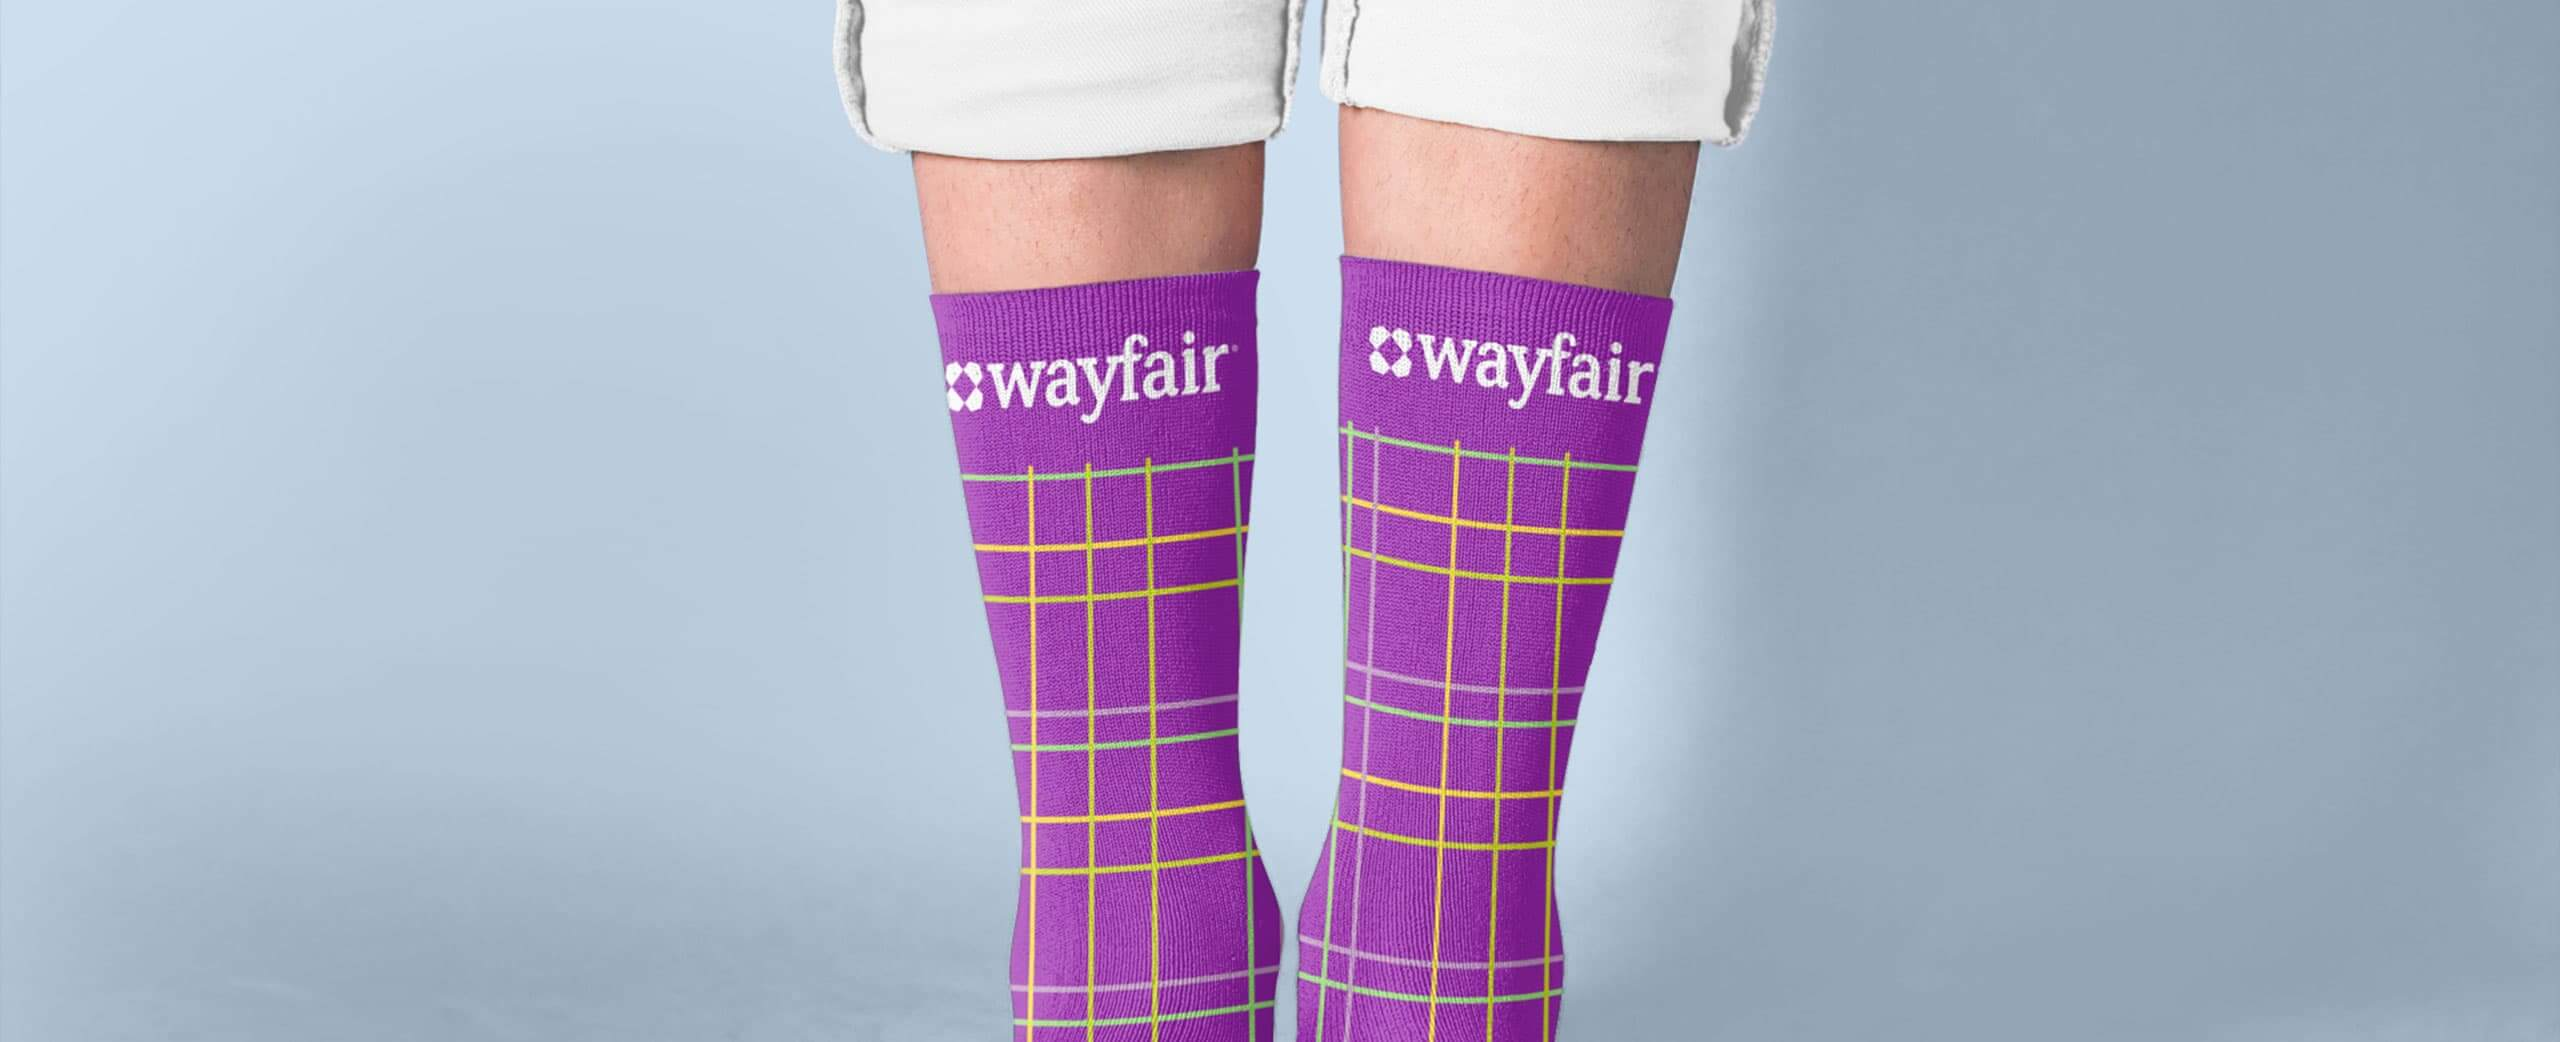 Wayfair-socks